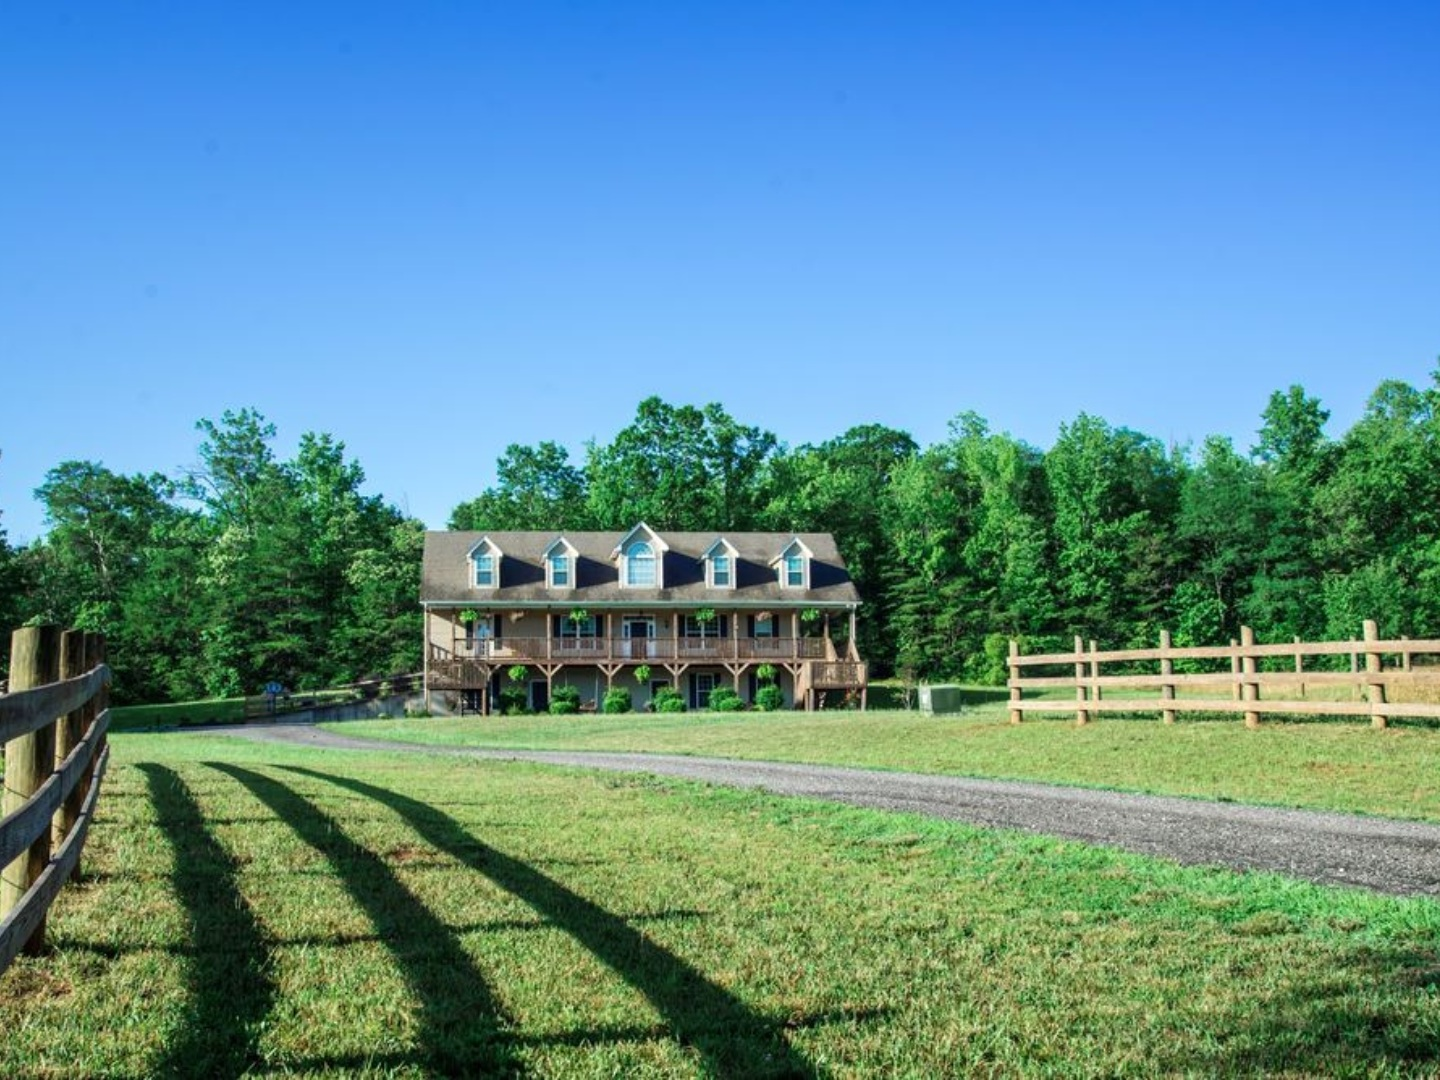 A large green field with trees in the background at Glassy View Bed and Breakfast.